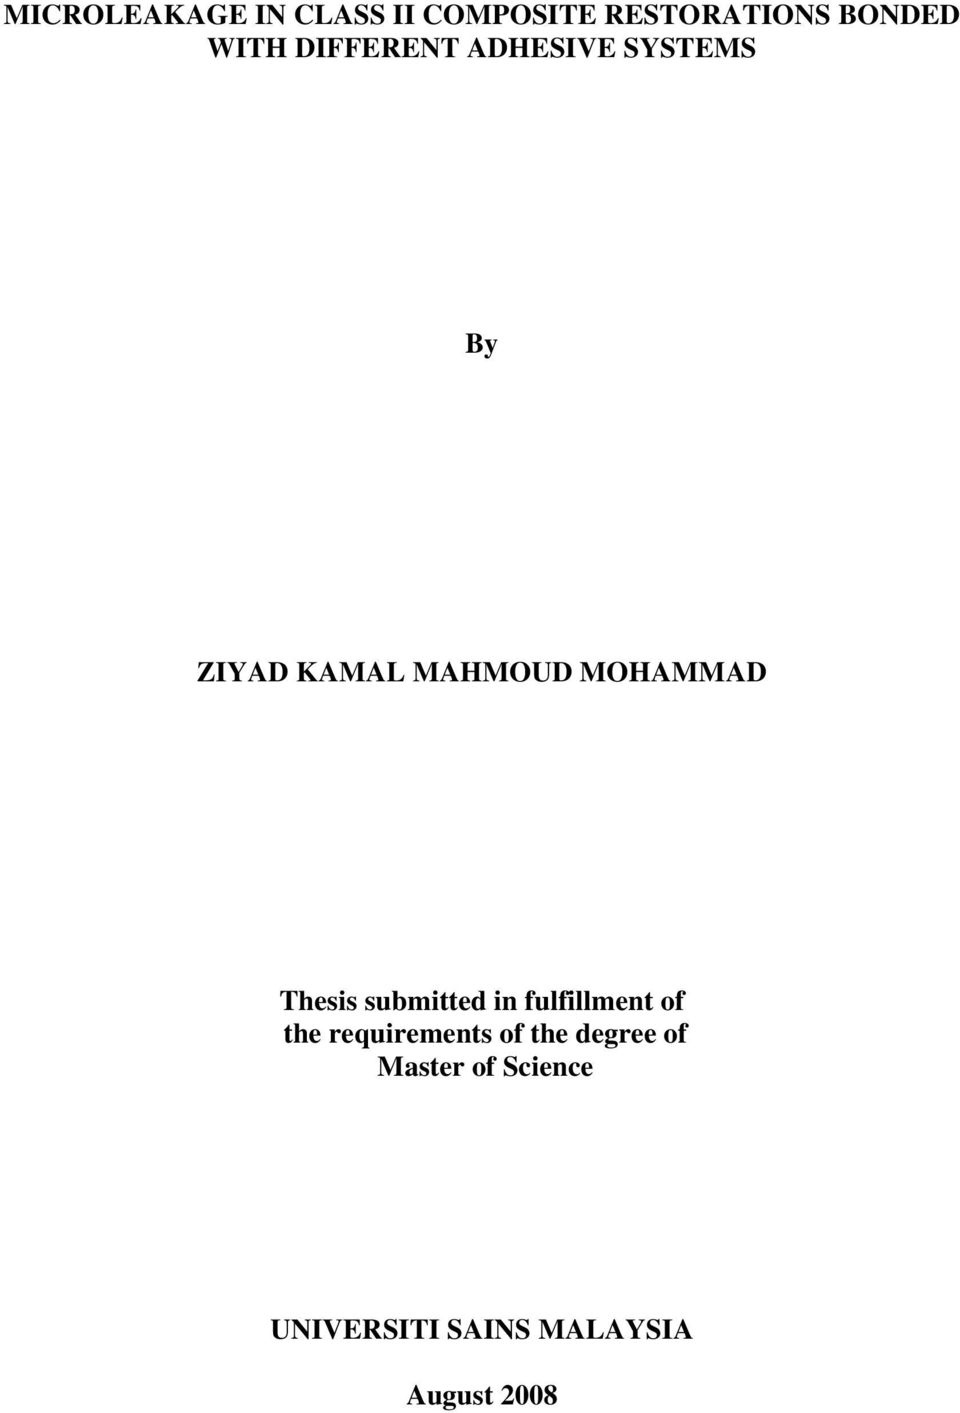 Thesis submitted in fulfillment of the requirements of the